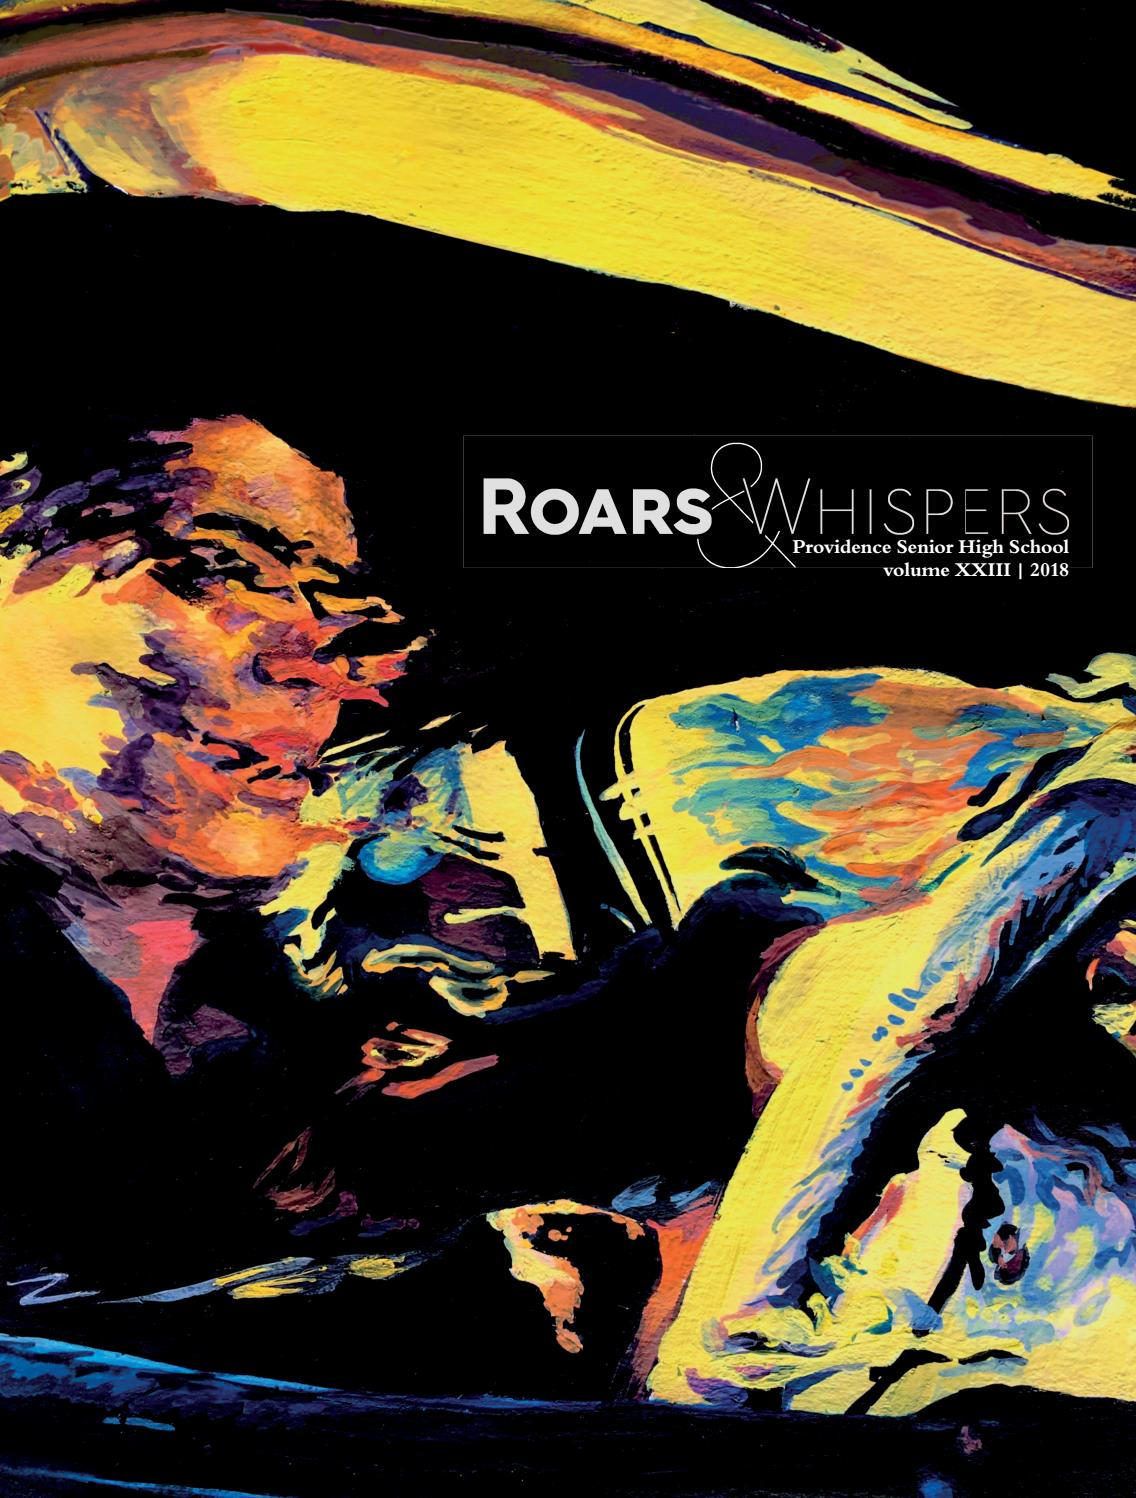 Roars and Whispers Volume XXIII 2018 by Roars and Whispers